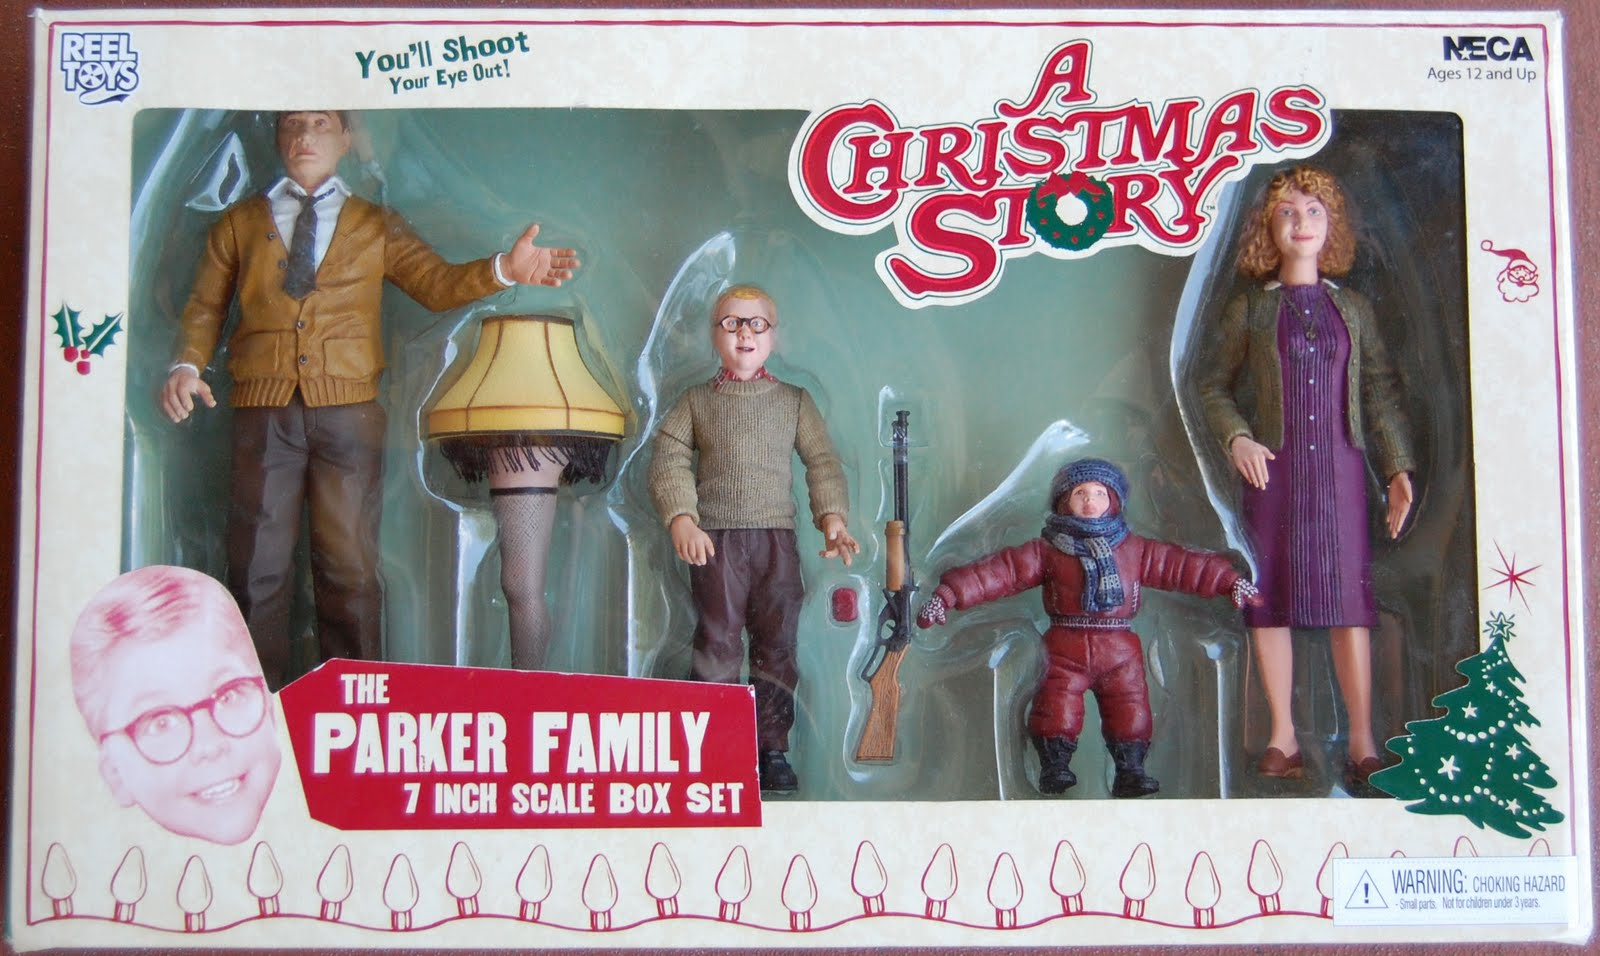 a christmas story the parker family 7scale box set - What Year Is Christmas Story Set